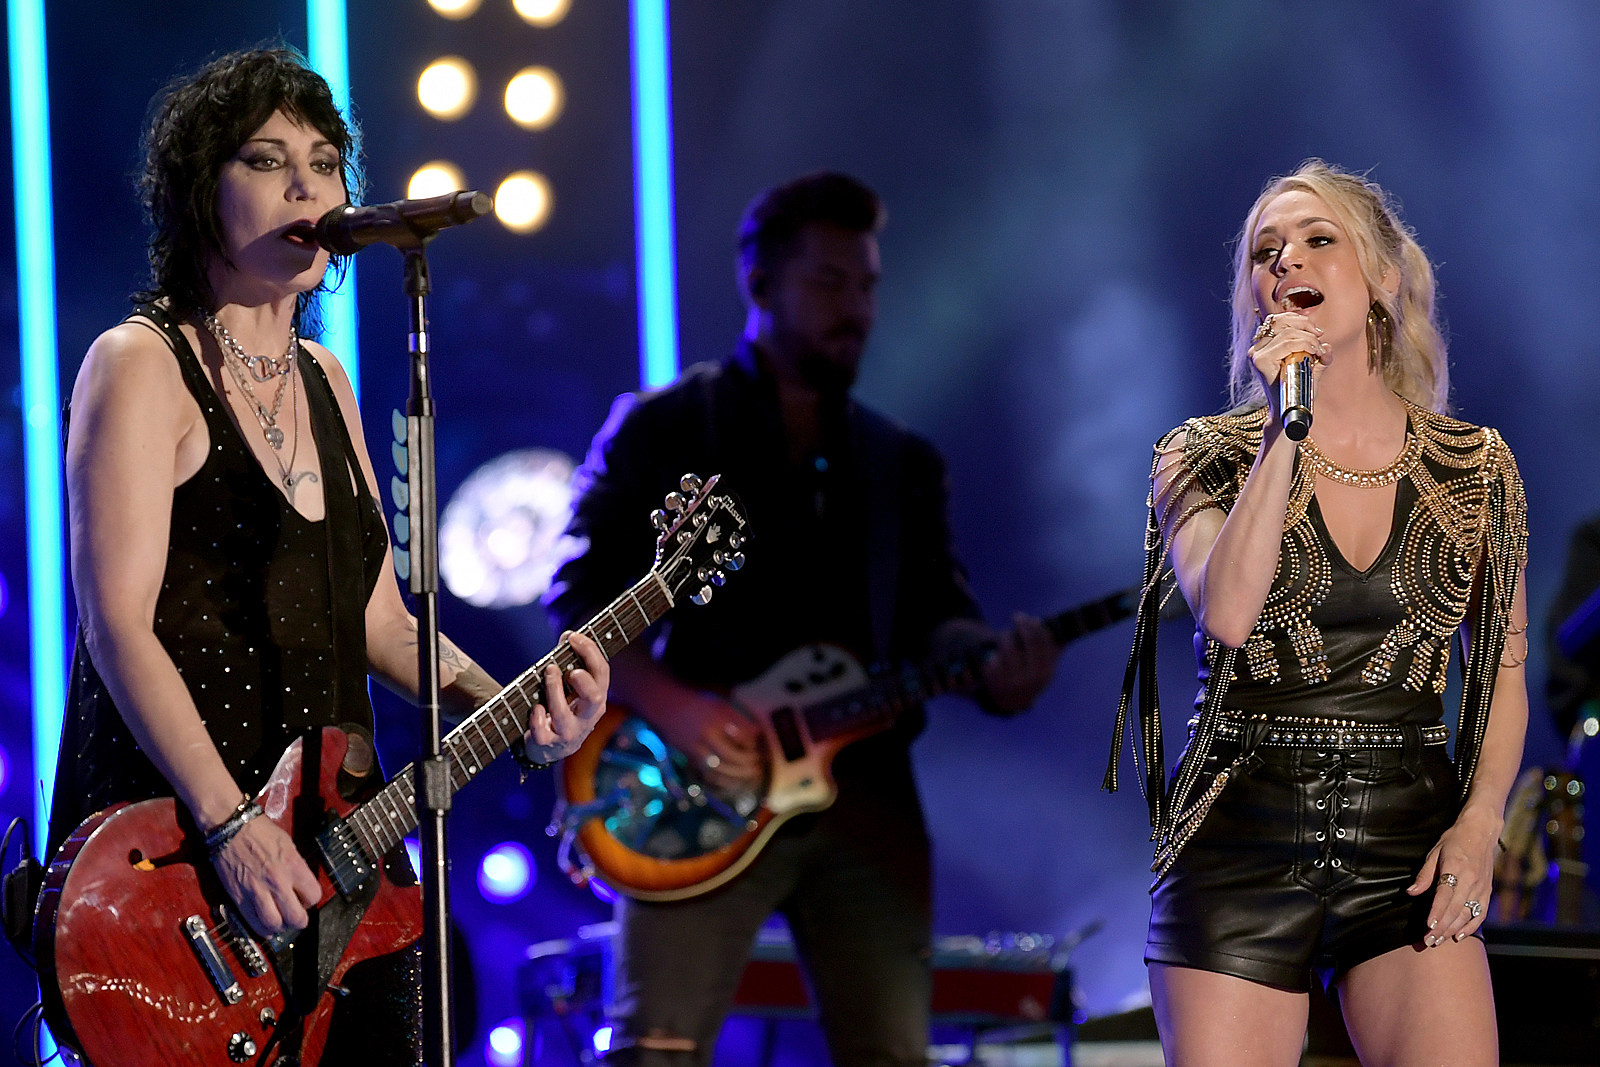 Joan Jett to Sing With Carrie Underwood on 'Sunday Night Football' Theme Song